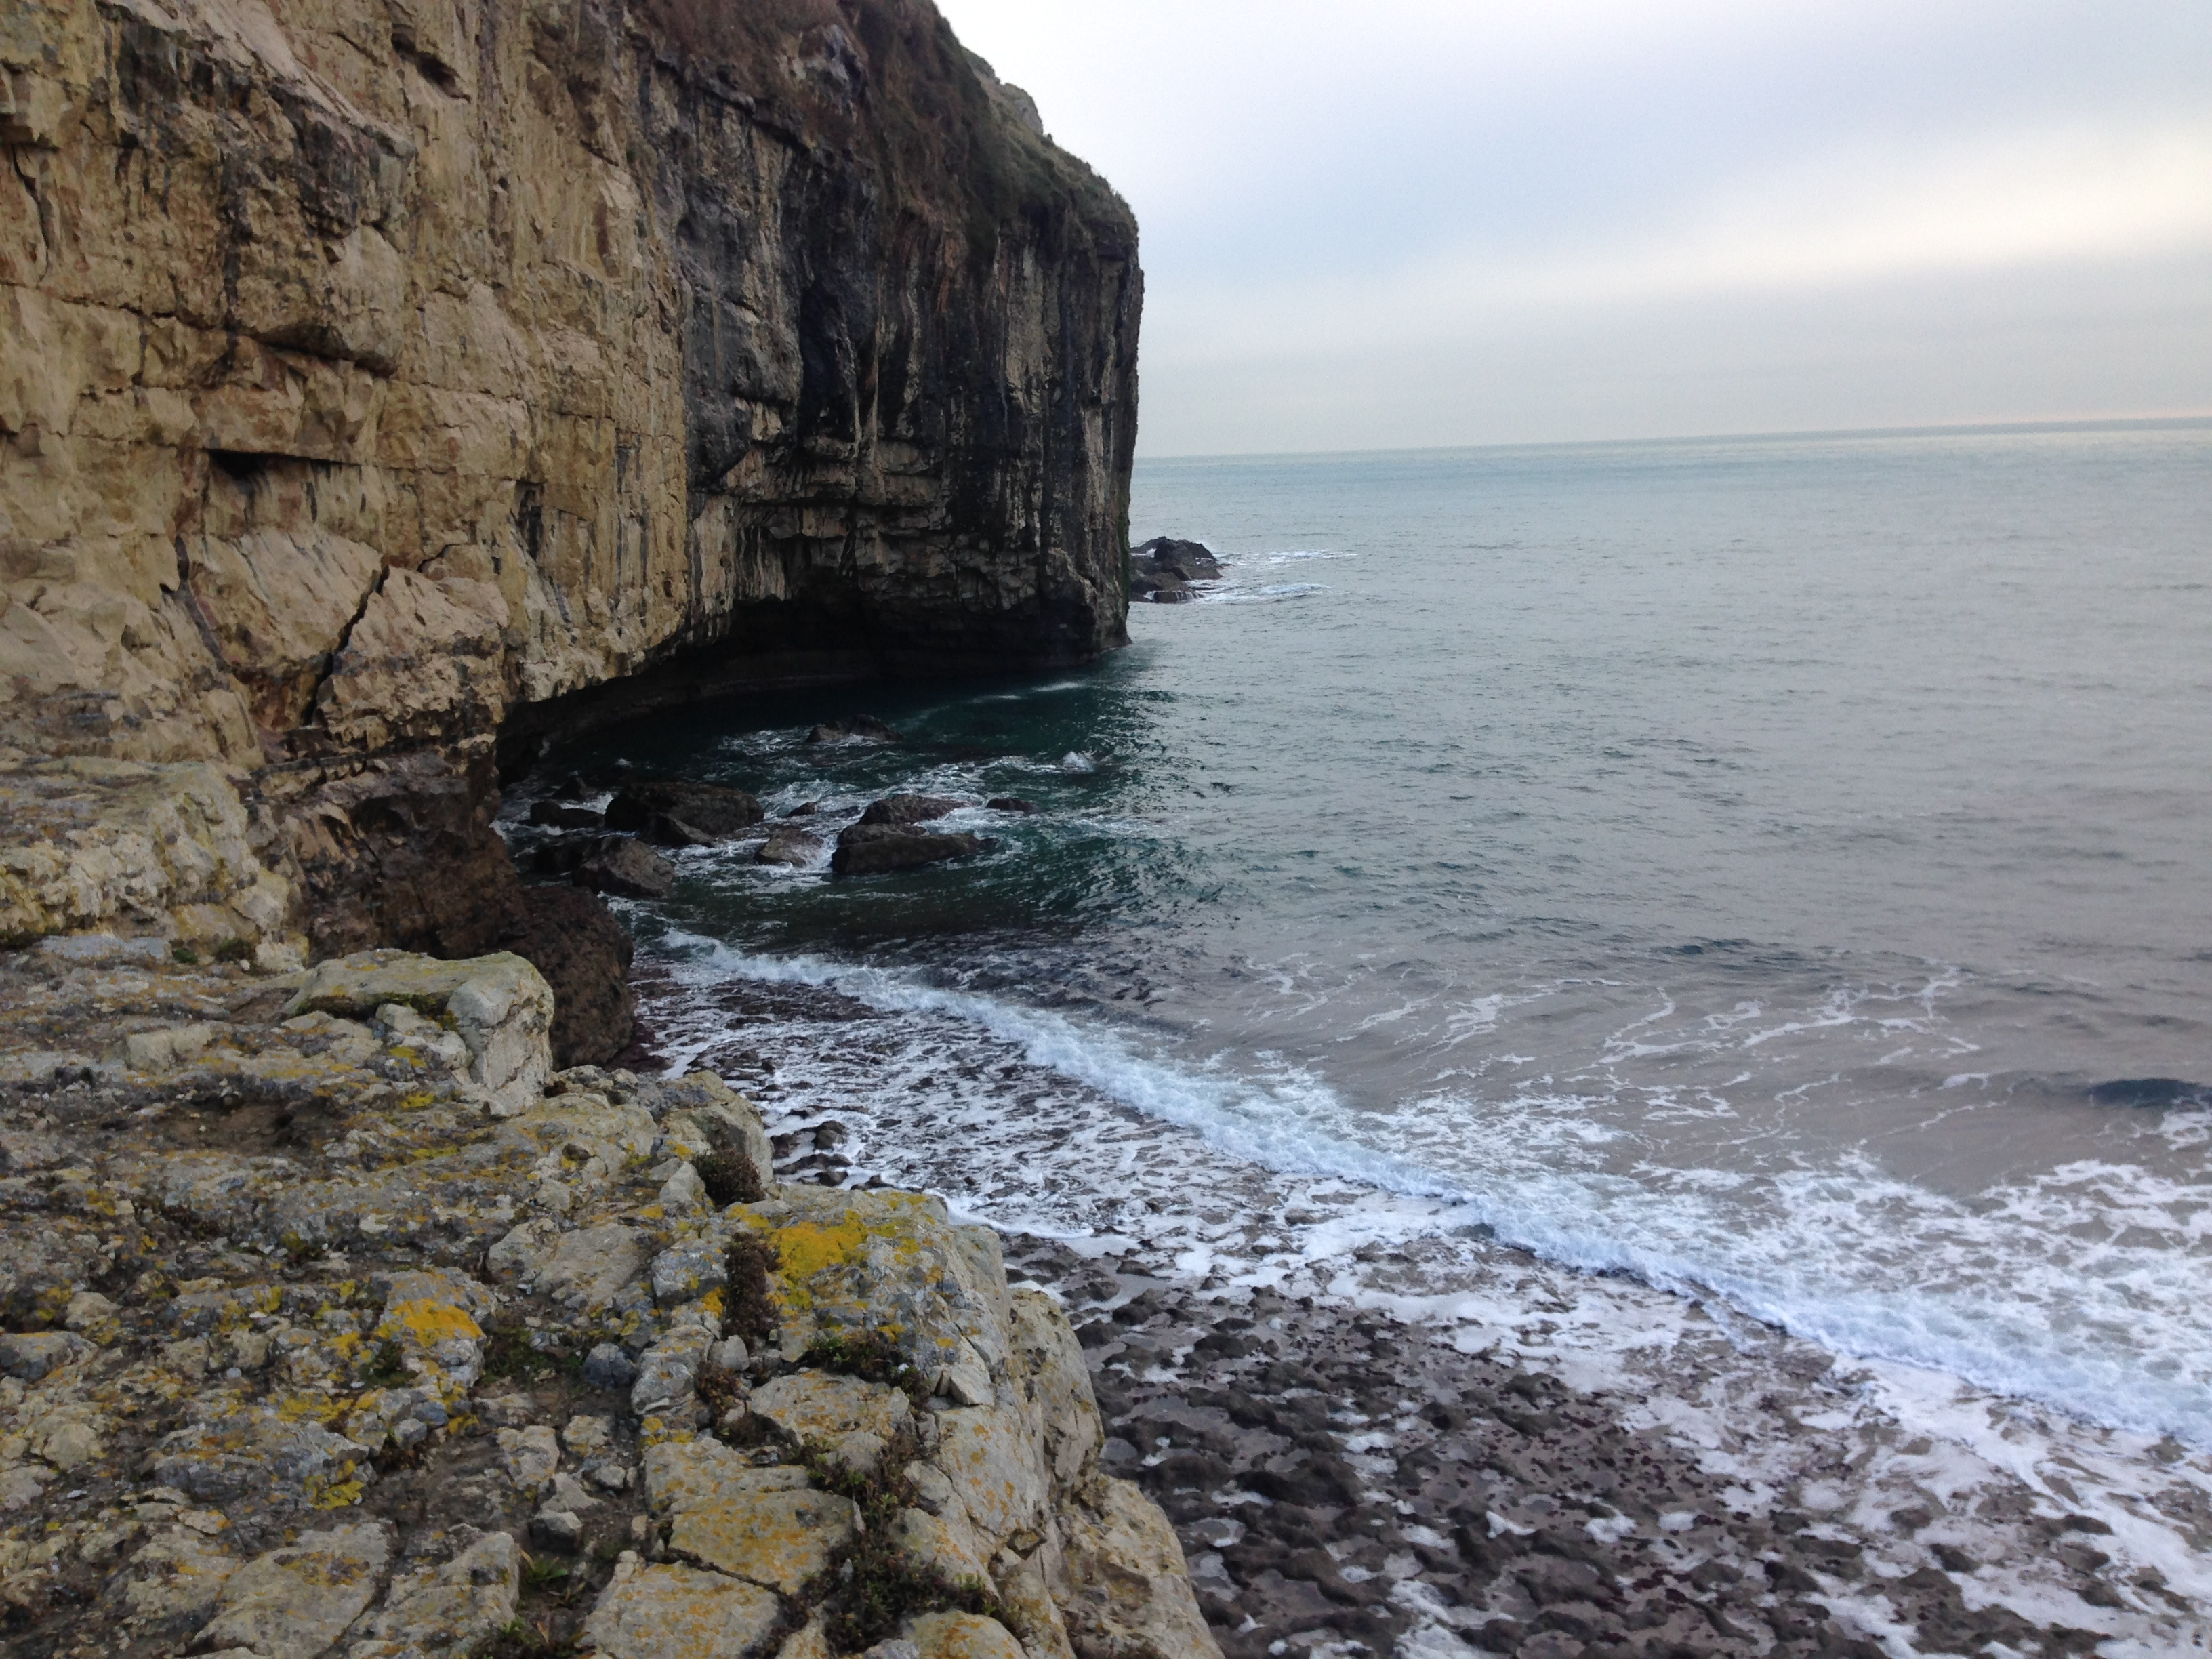 Looking back from where we sat, as the sea relentlessly undermines the cliff